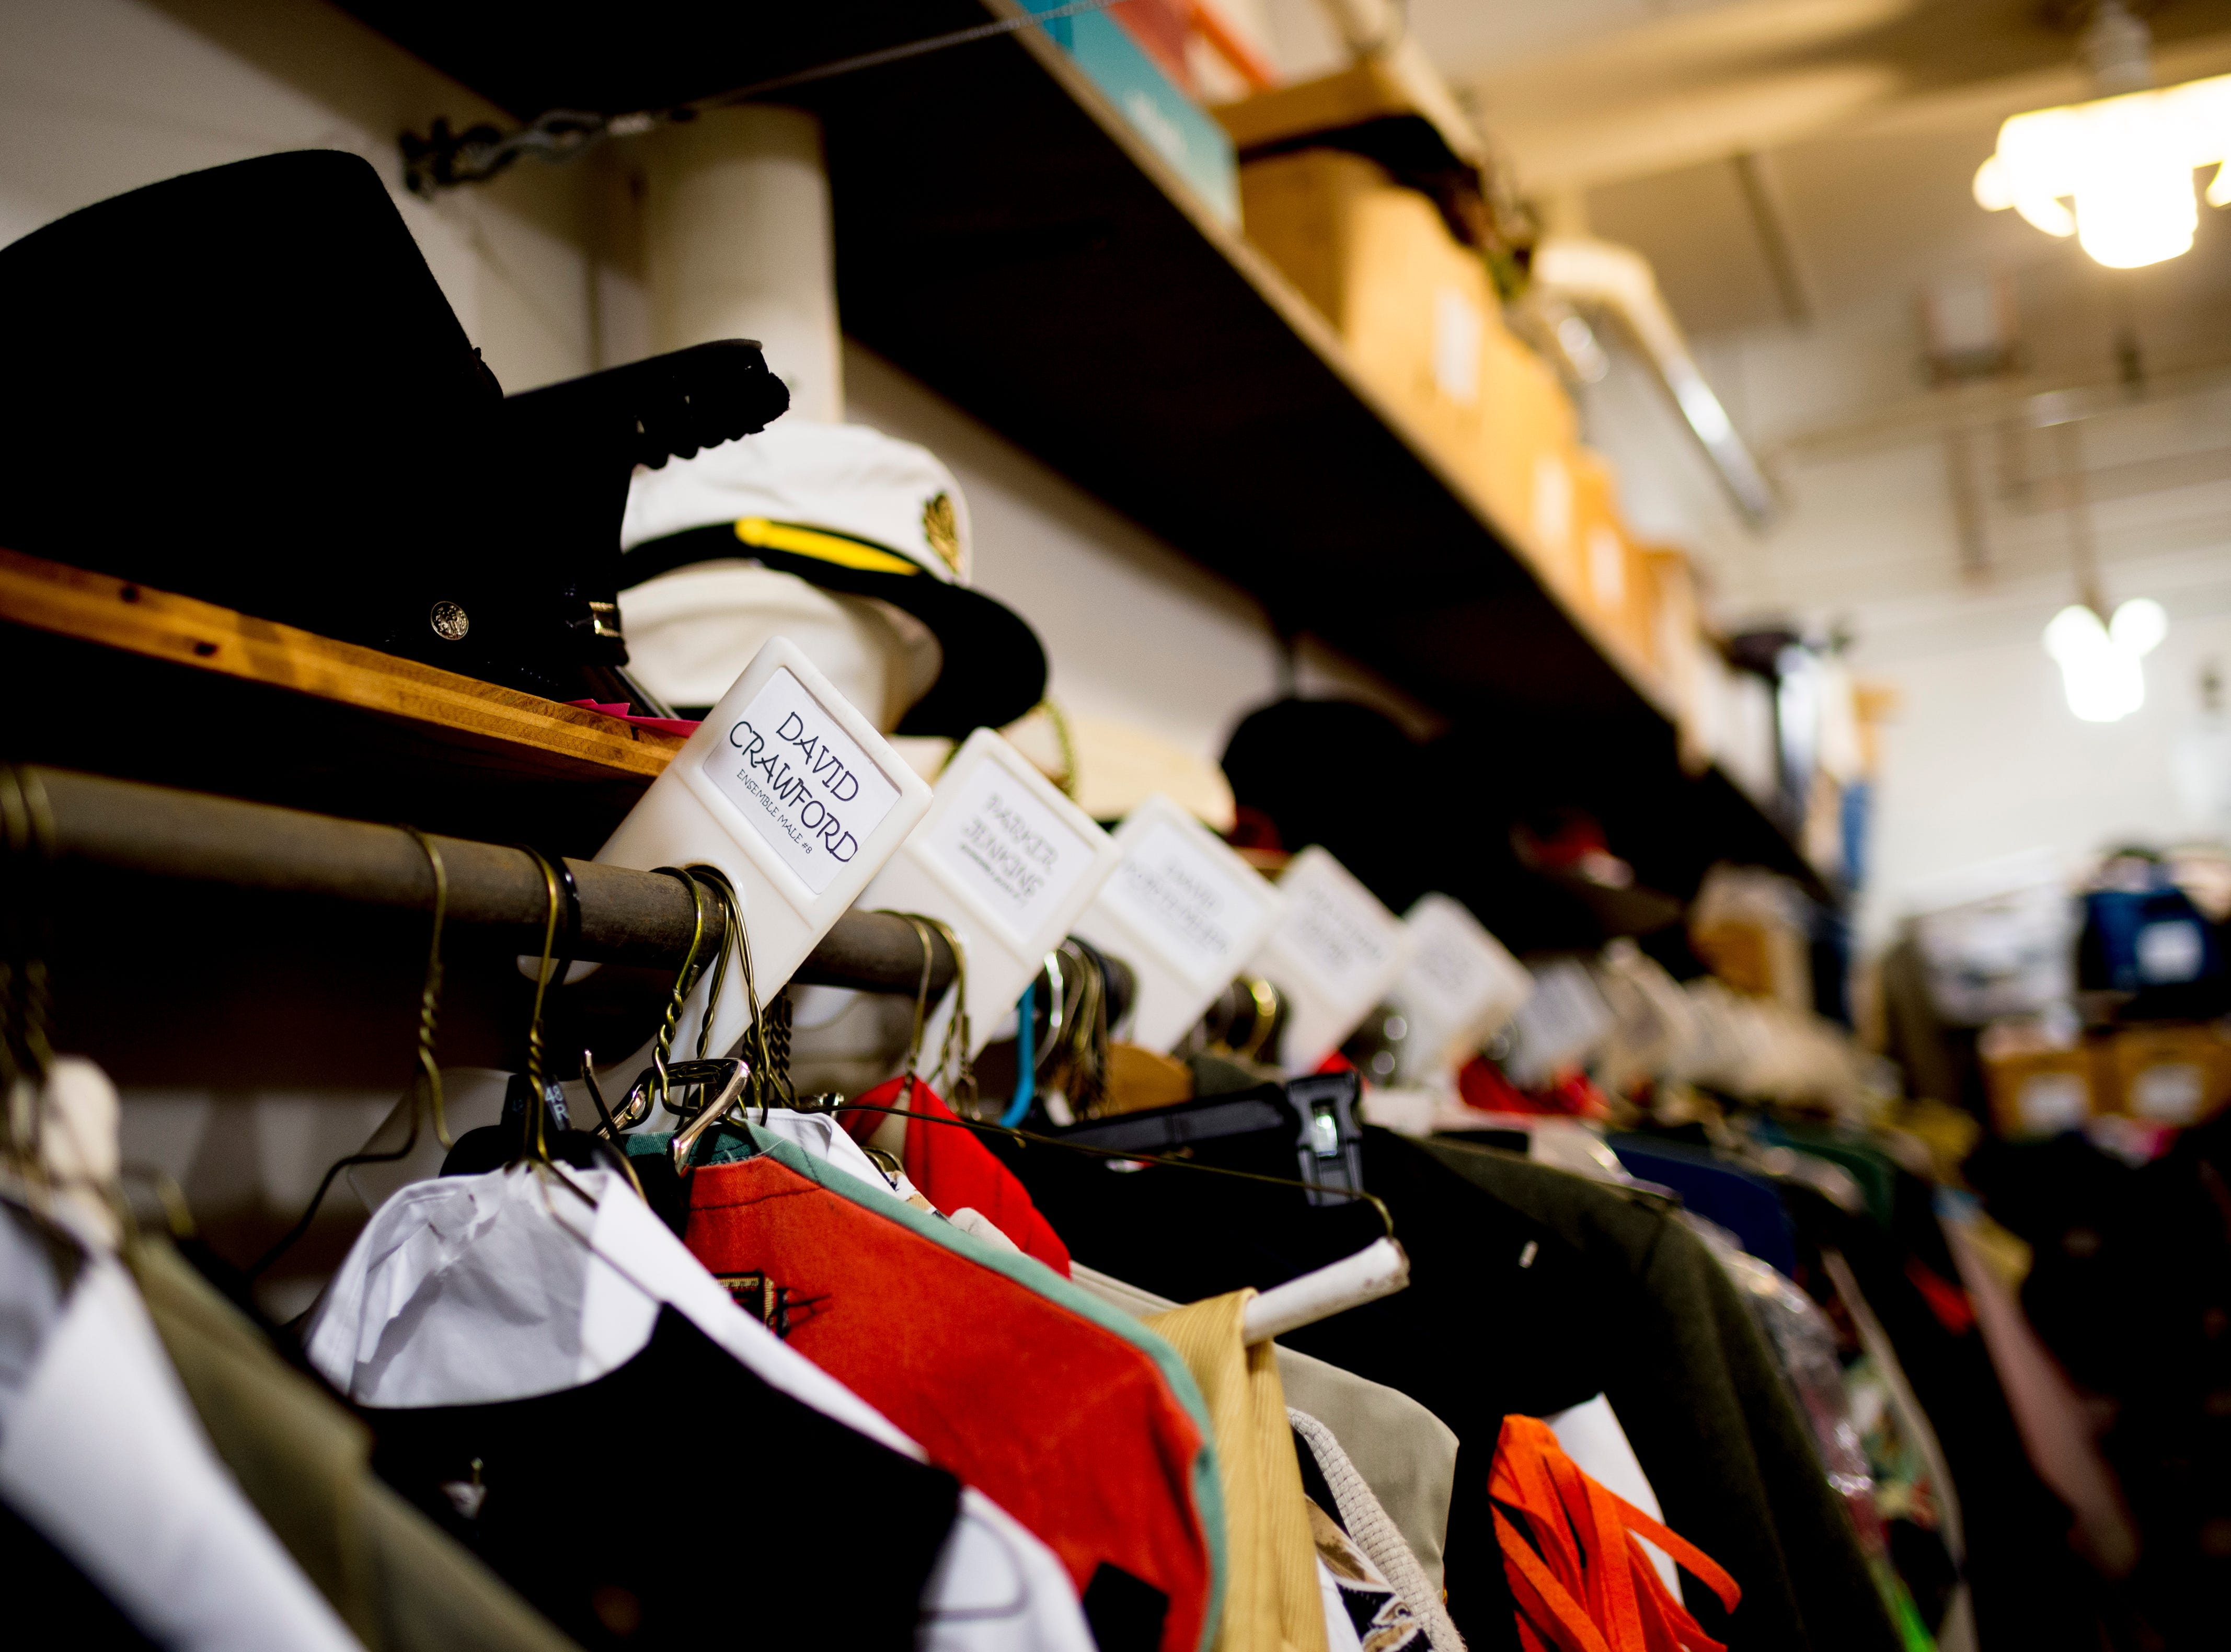 Costumes hang on the rack in the costume shop ahead of opening day for Candide at the Clarence Brown Theatre  in Knoxville, Tennessee on Tuesday, August 14, 2018. Leonard BernsteinÕs acclaimed operetta, Candide, is to open Friday, August 31, with previews beginning August 29.